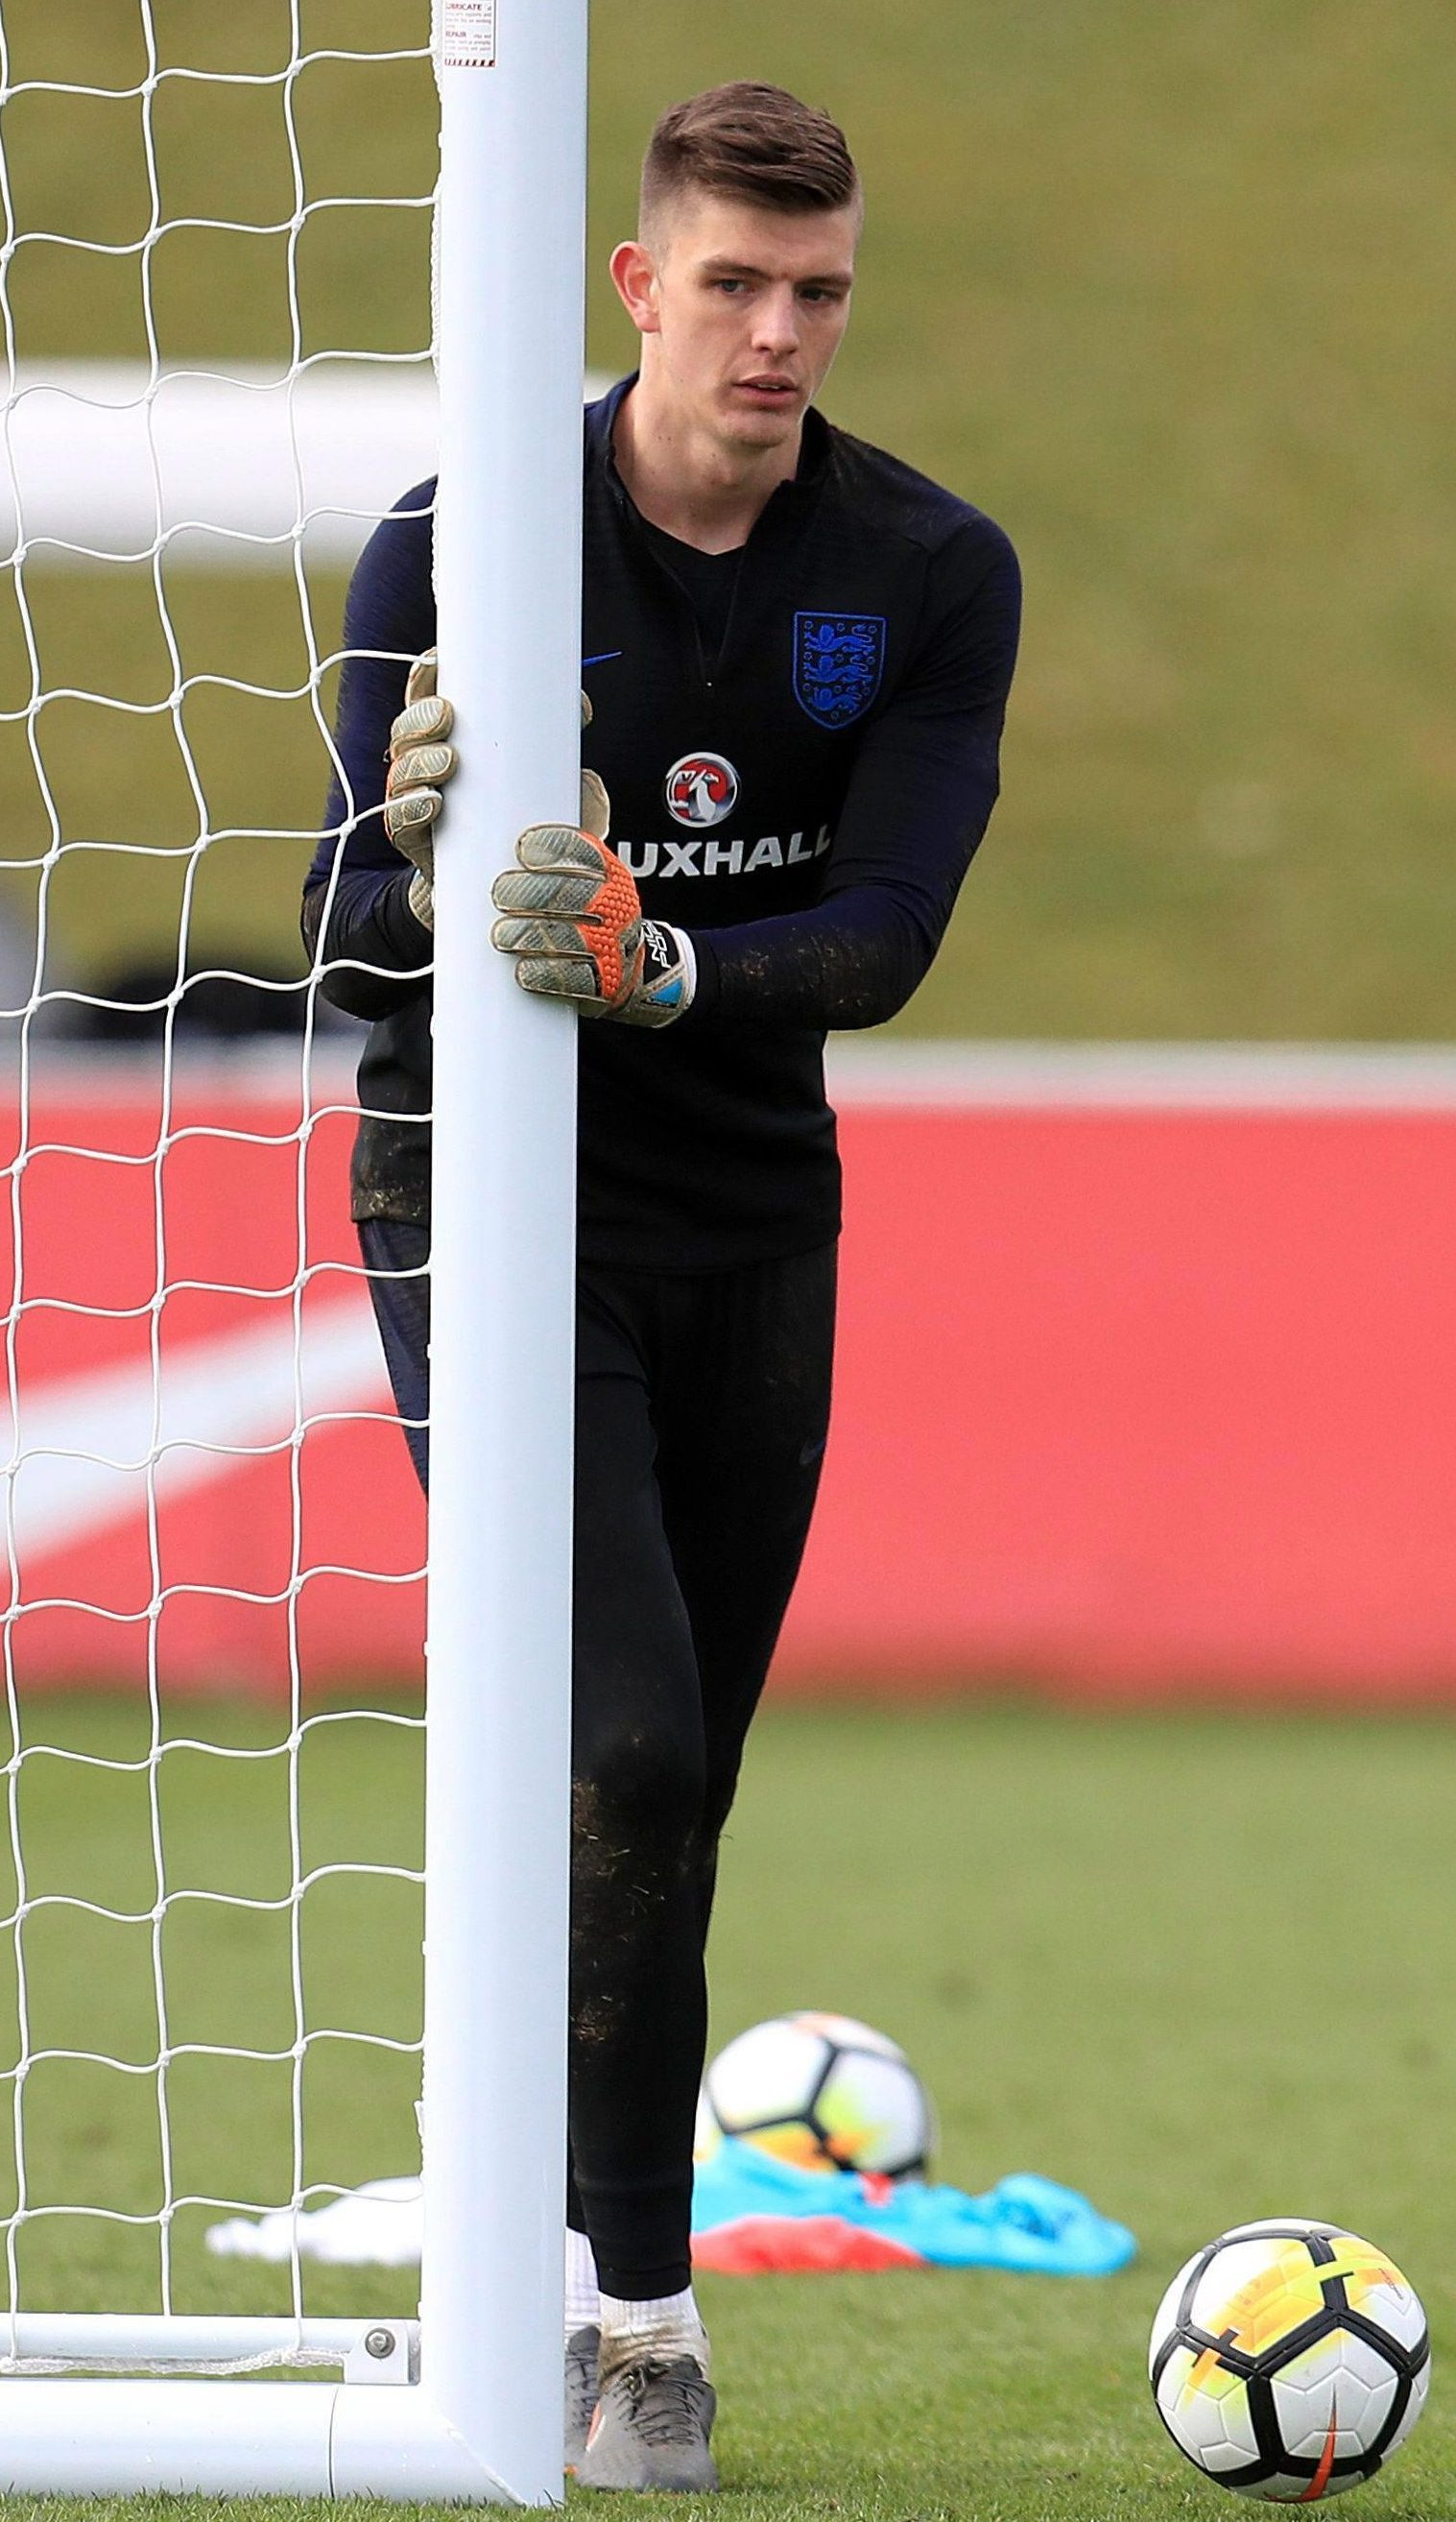 Burnley star Nick Pope used to deliver milk not the post and is now close to completing an amazing rise from part-time player to England keeper